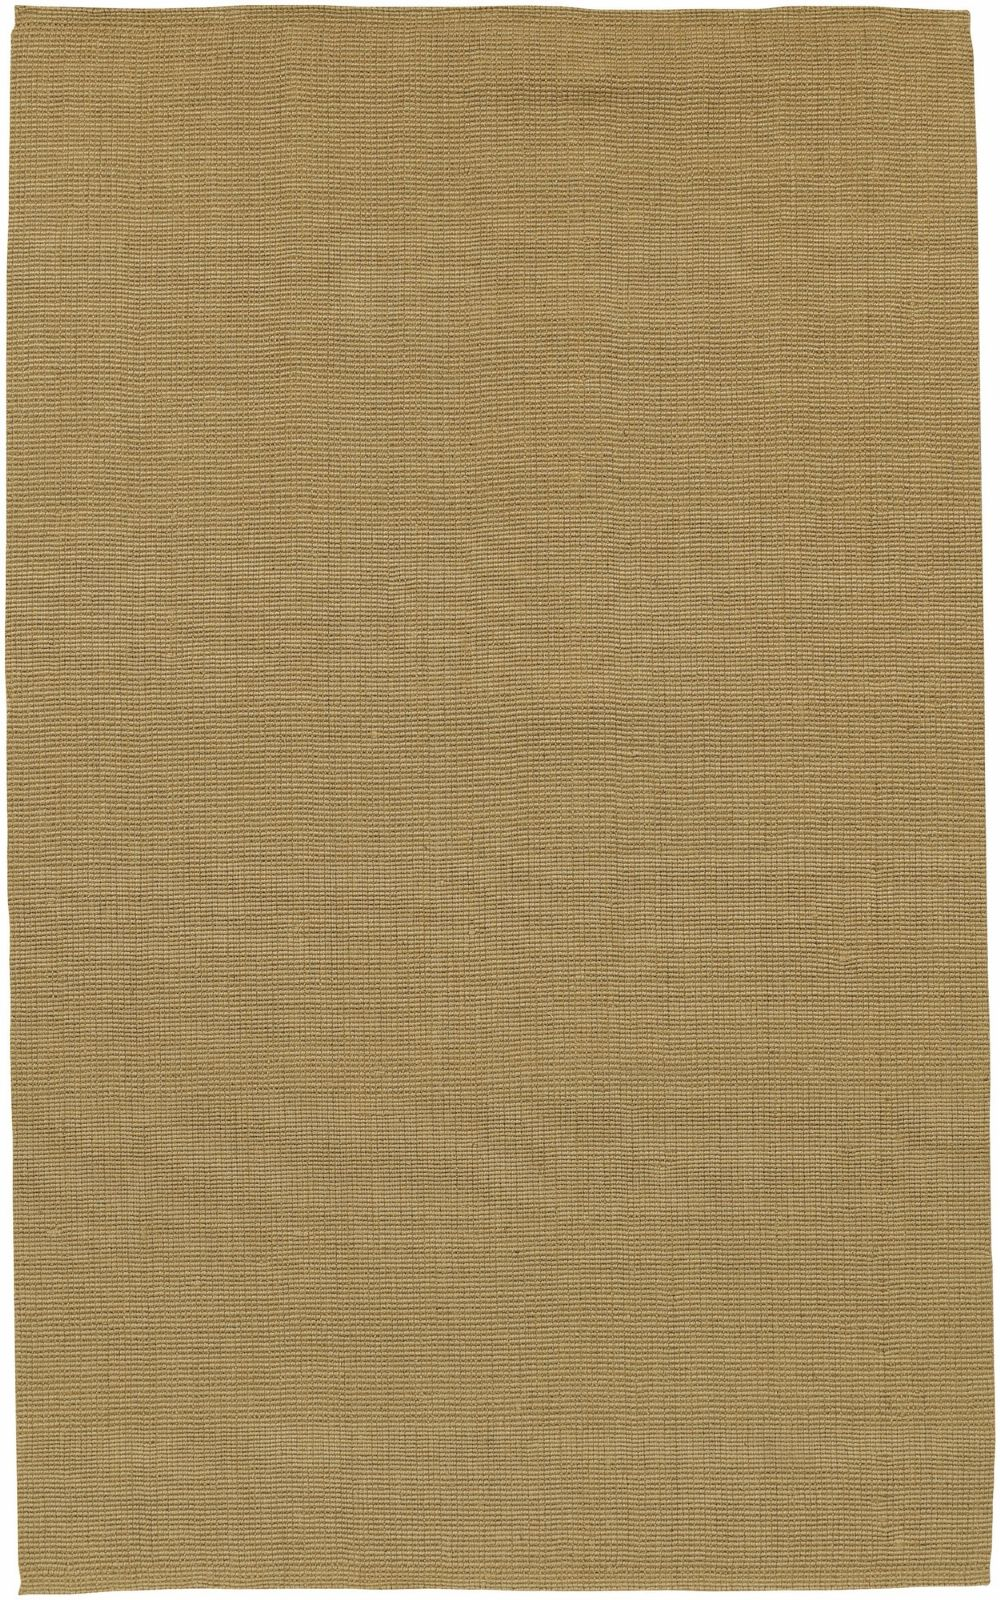 surya jute woven natural fiber area rug collection